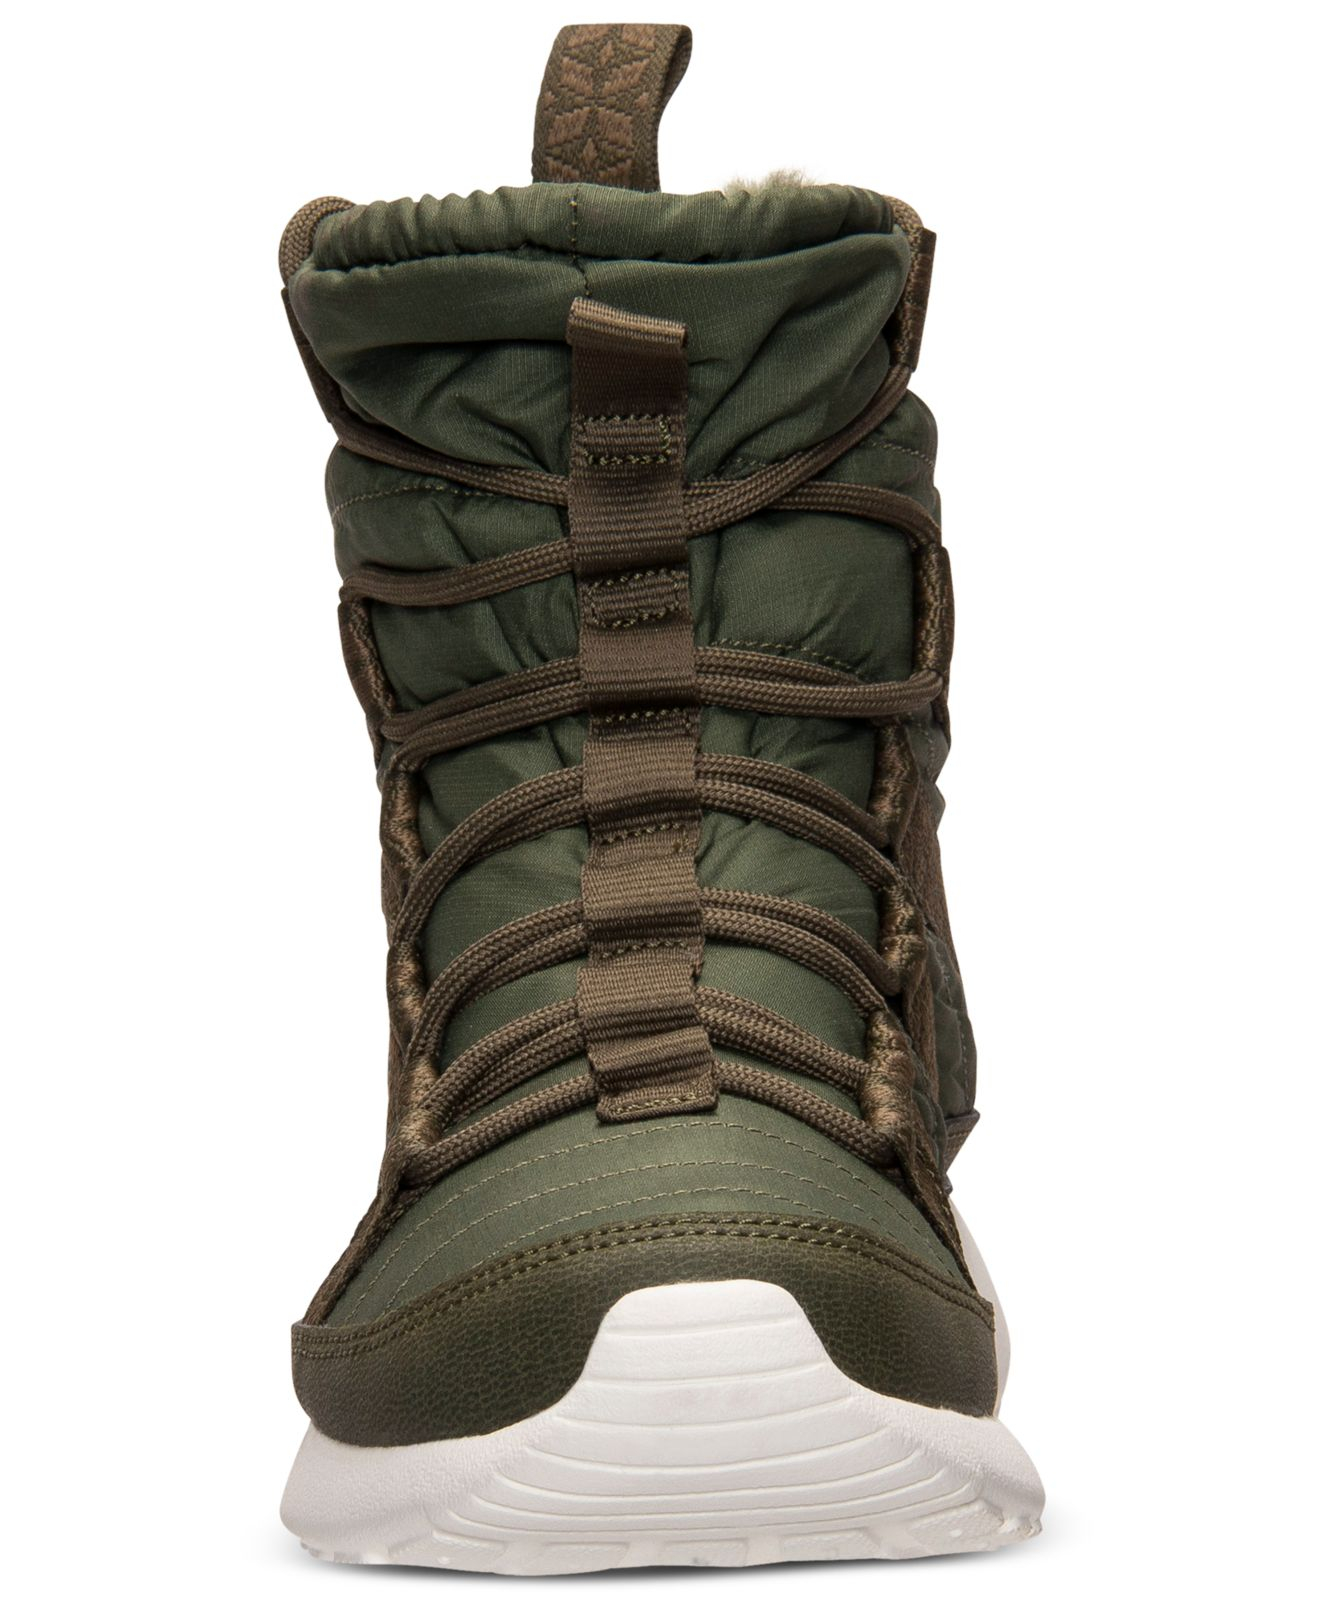 7abf5228e7e9 Lyst - Nike Women S Roshe Run Hi Sneakerboots From Finish Line in Green